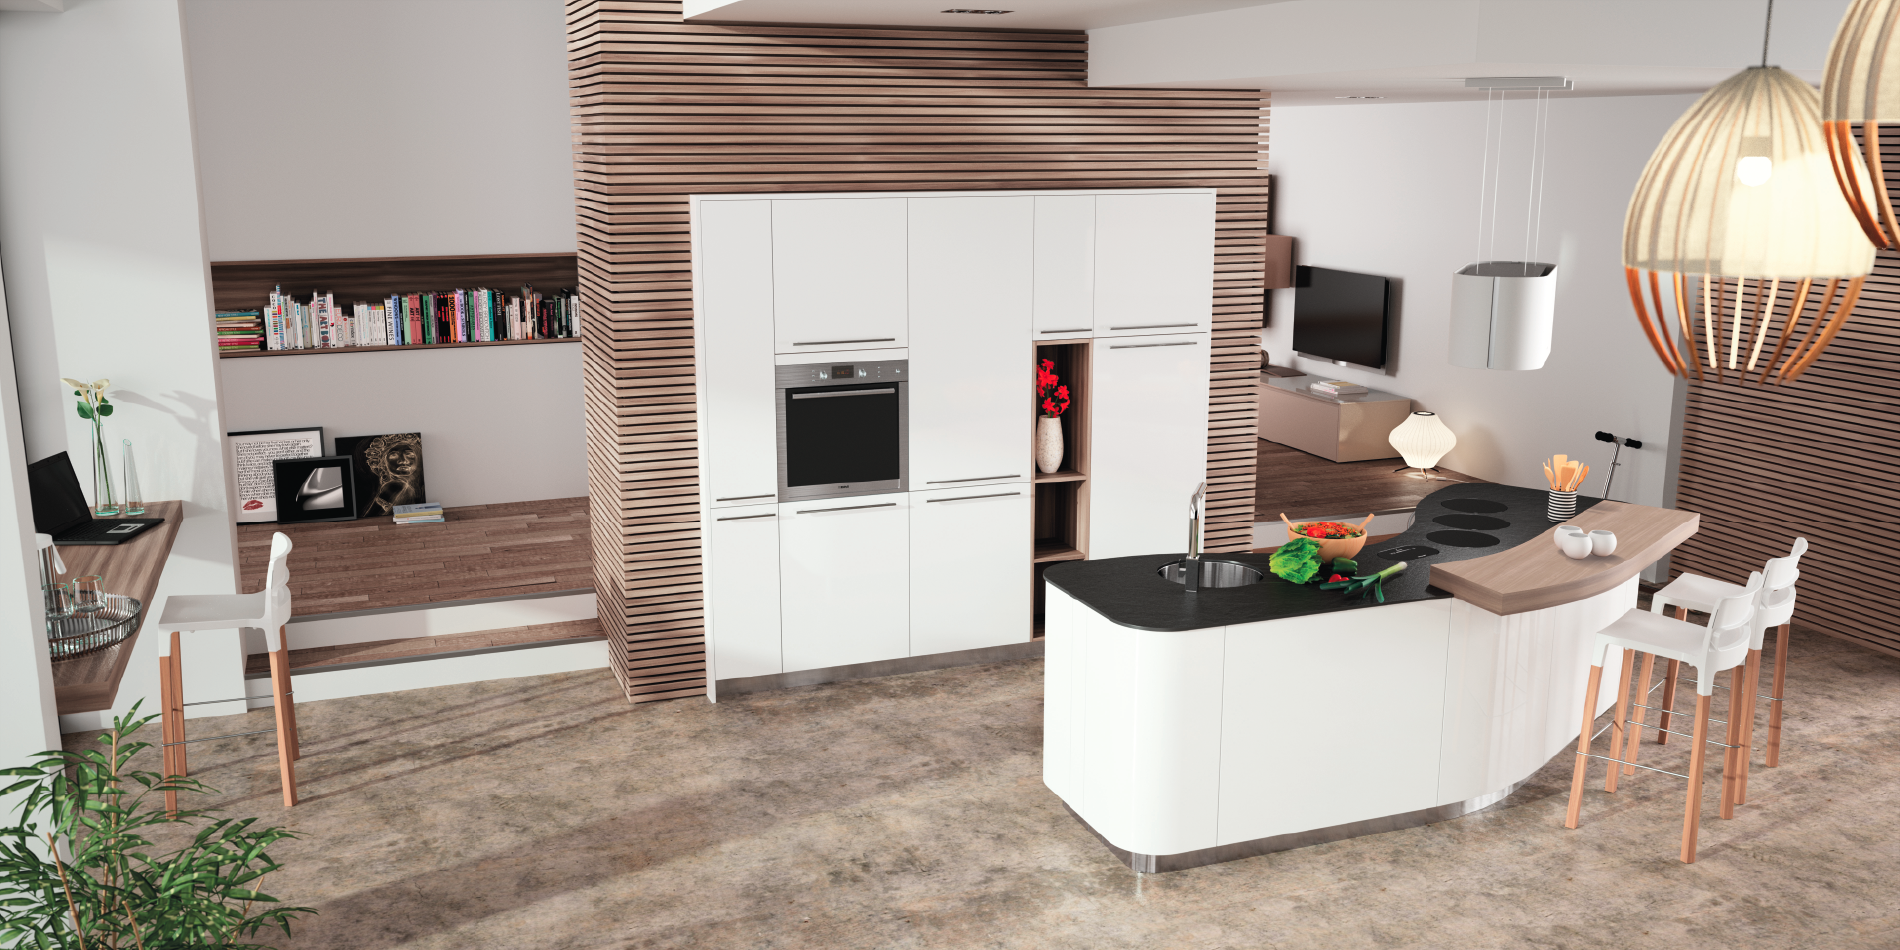 Cuisine design arrondie alicante 1 fabricant cuisiniste for Fabricants cuisines